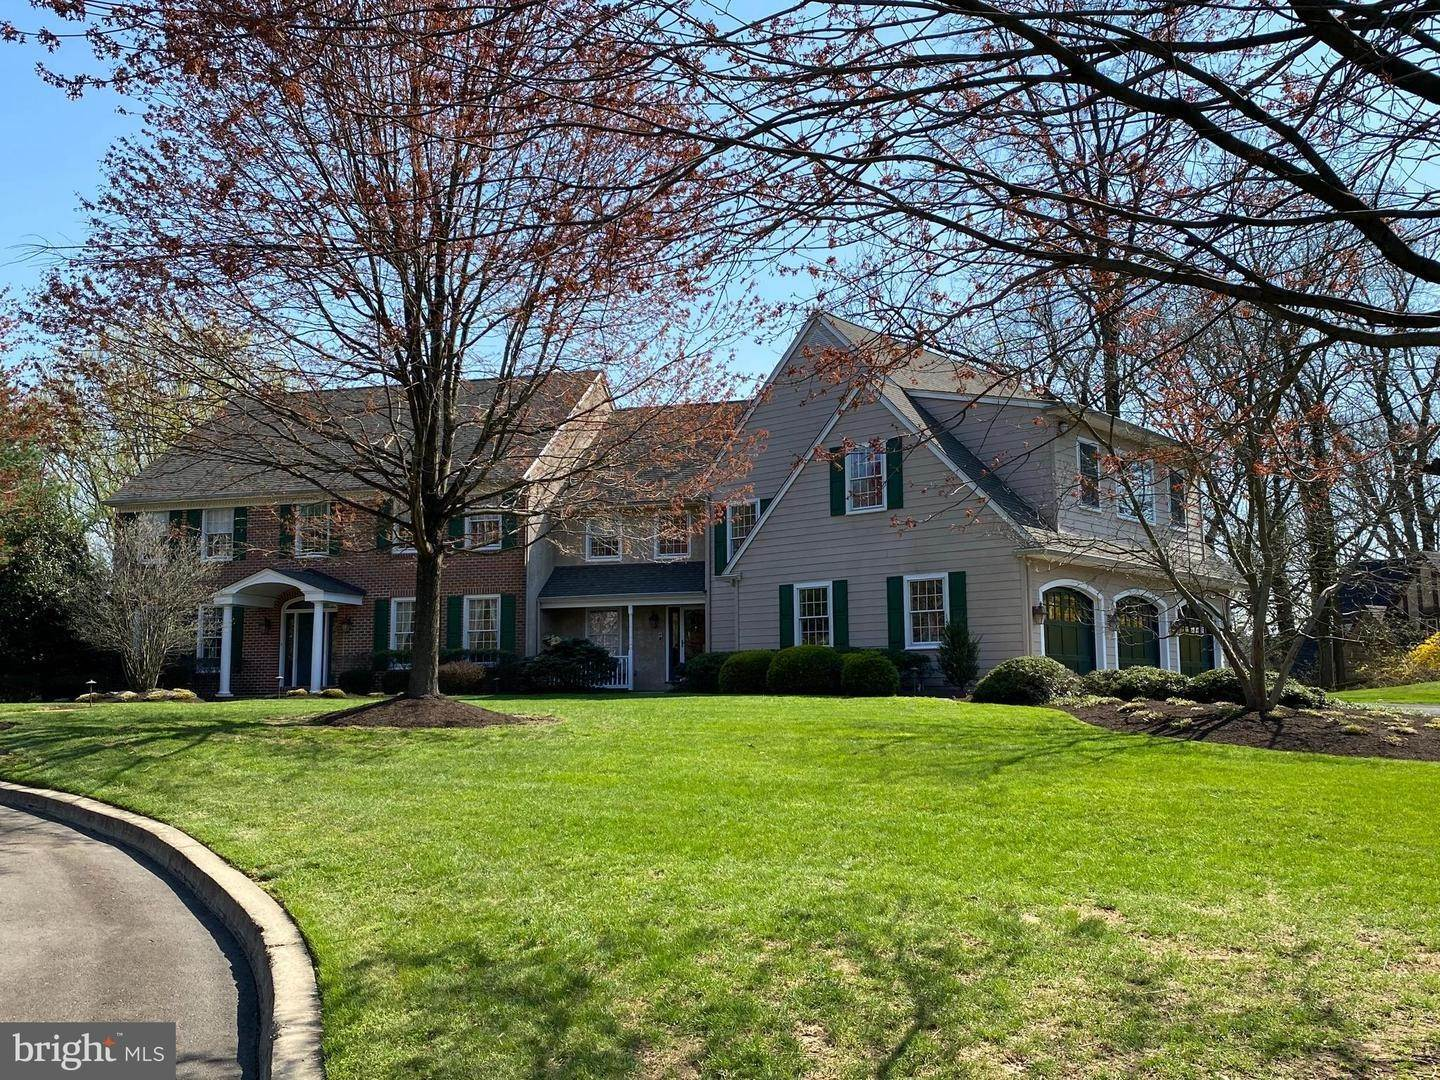 Property for Sale at 1430 ORCHARD HILL WAY Jenkintown, Pennsylvania 19046 United States